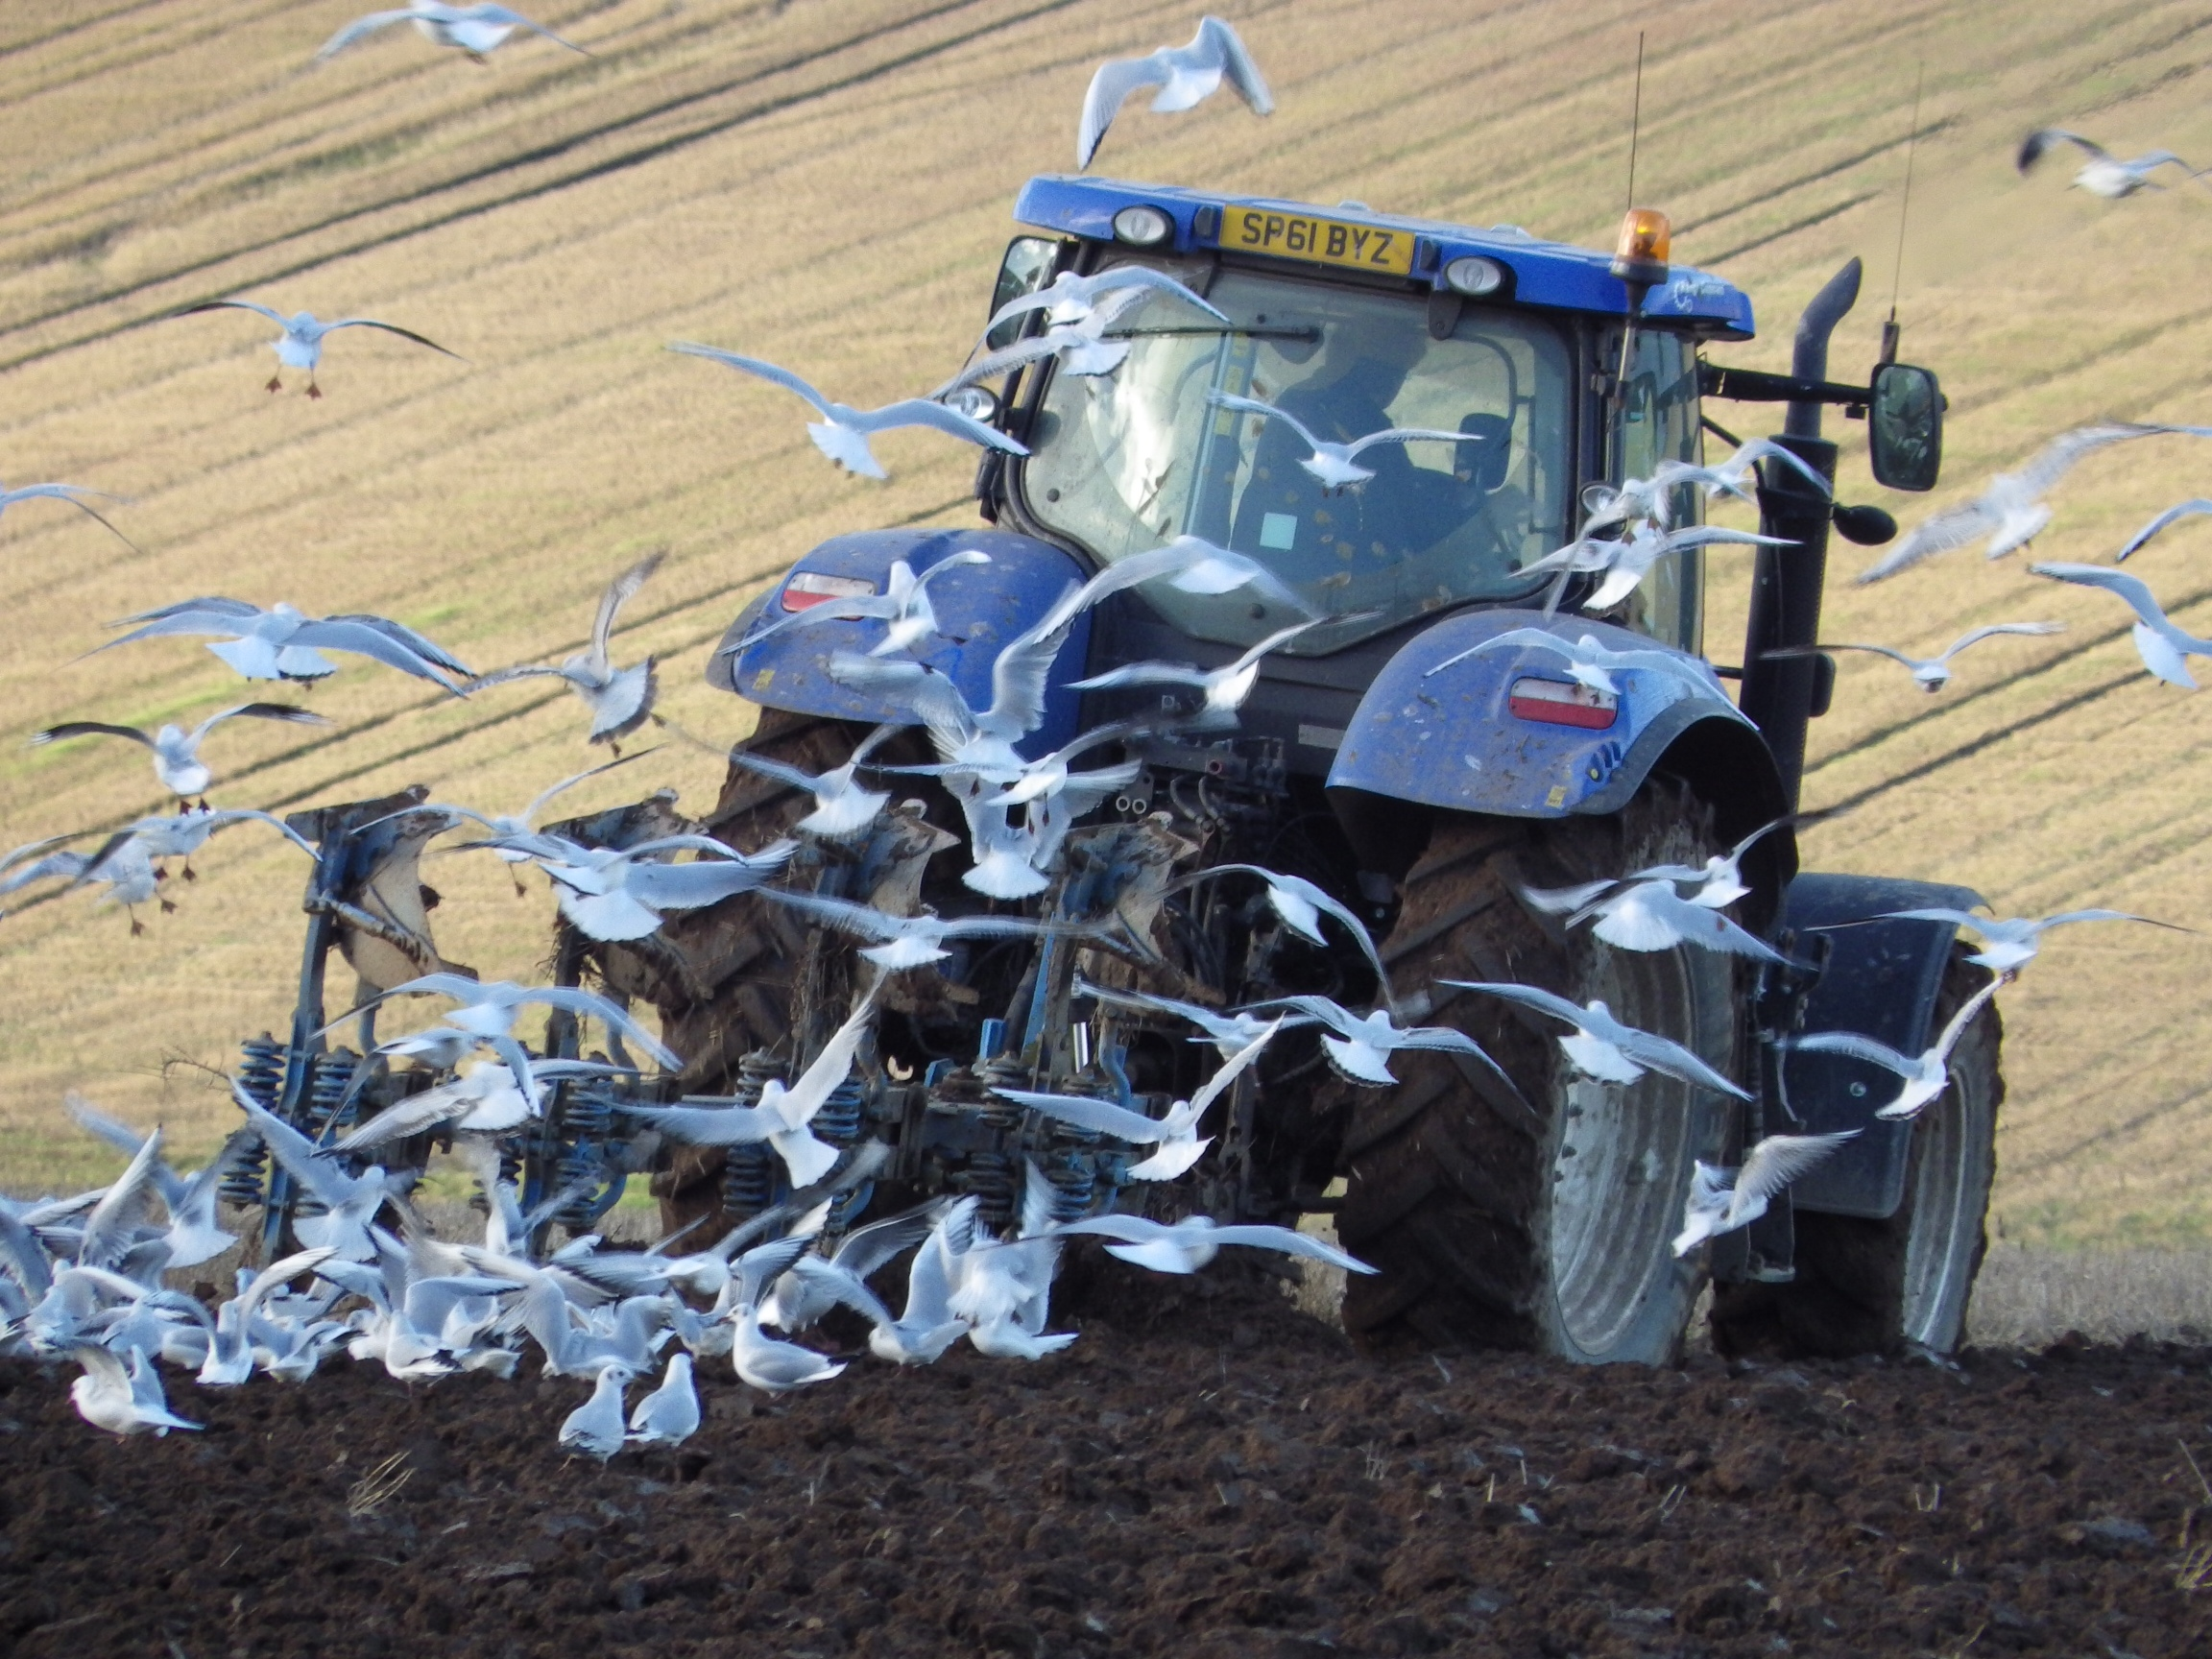 Scotland has a diverse agricultural landscape which poses challenges in developing policy.